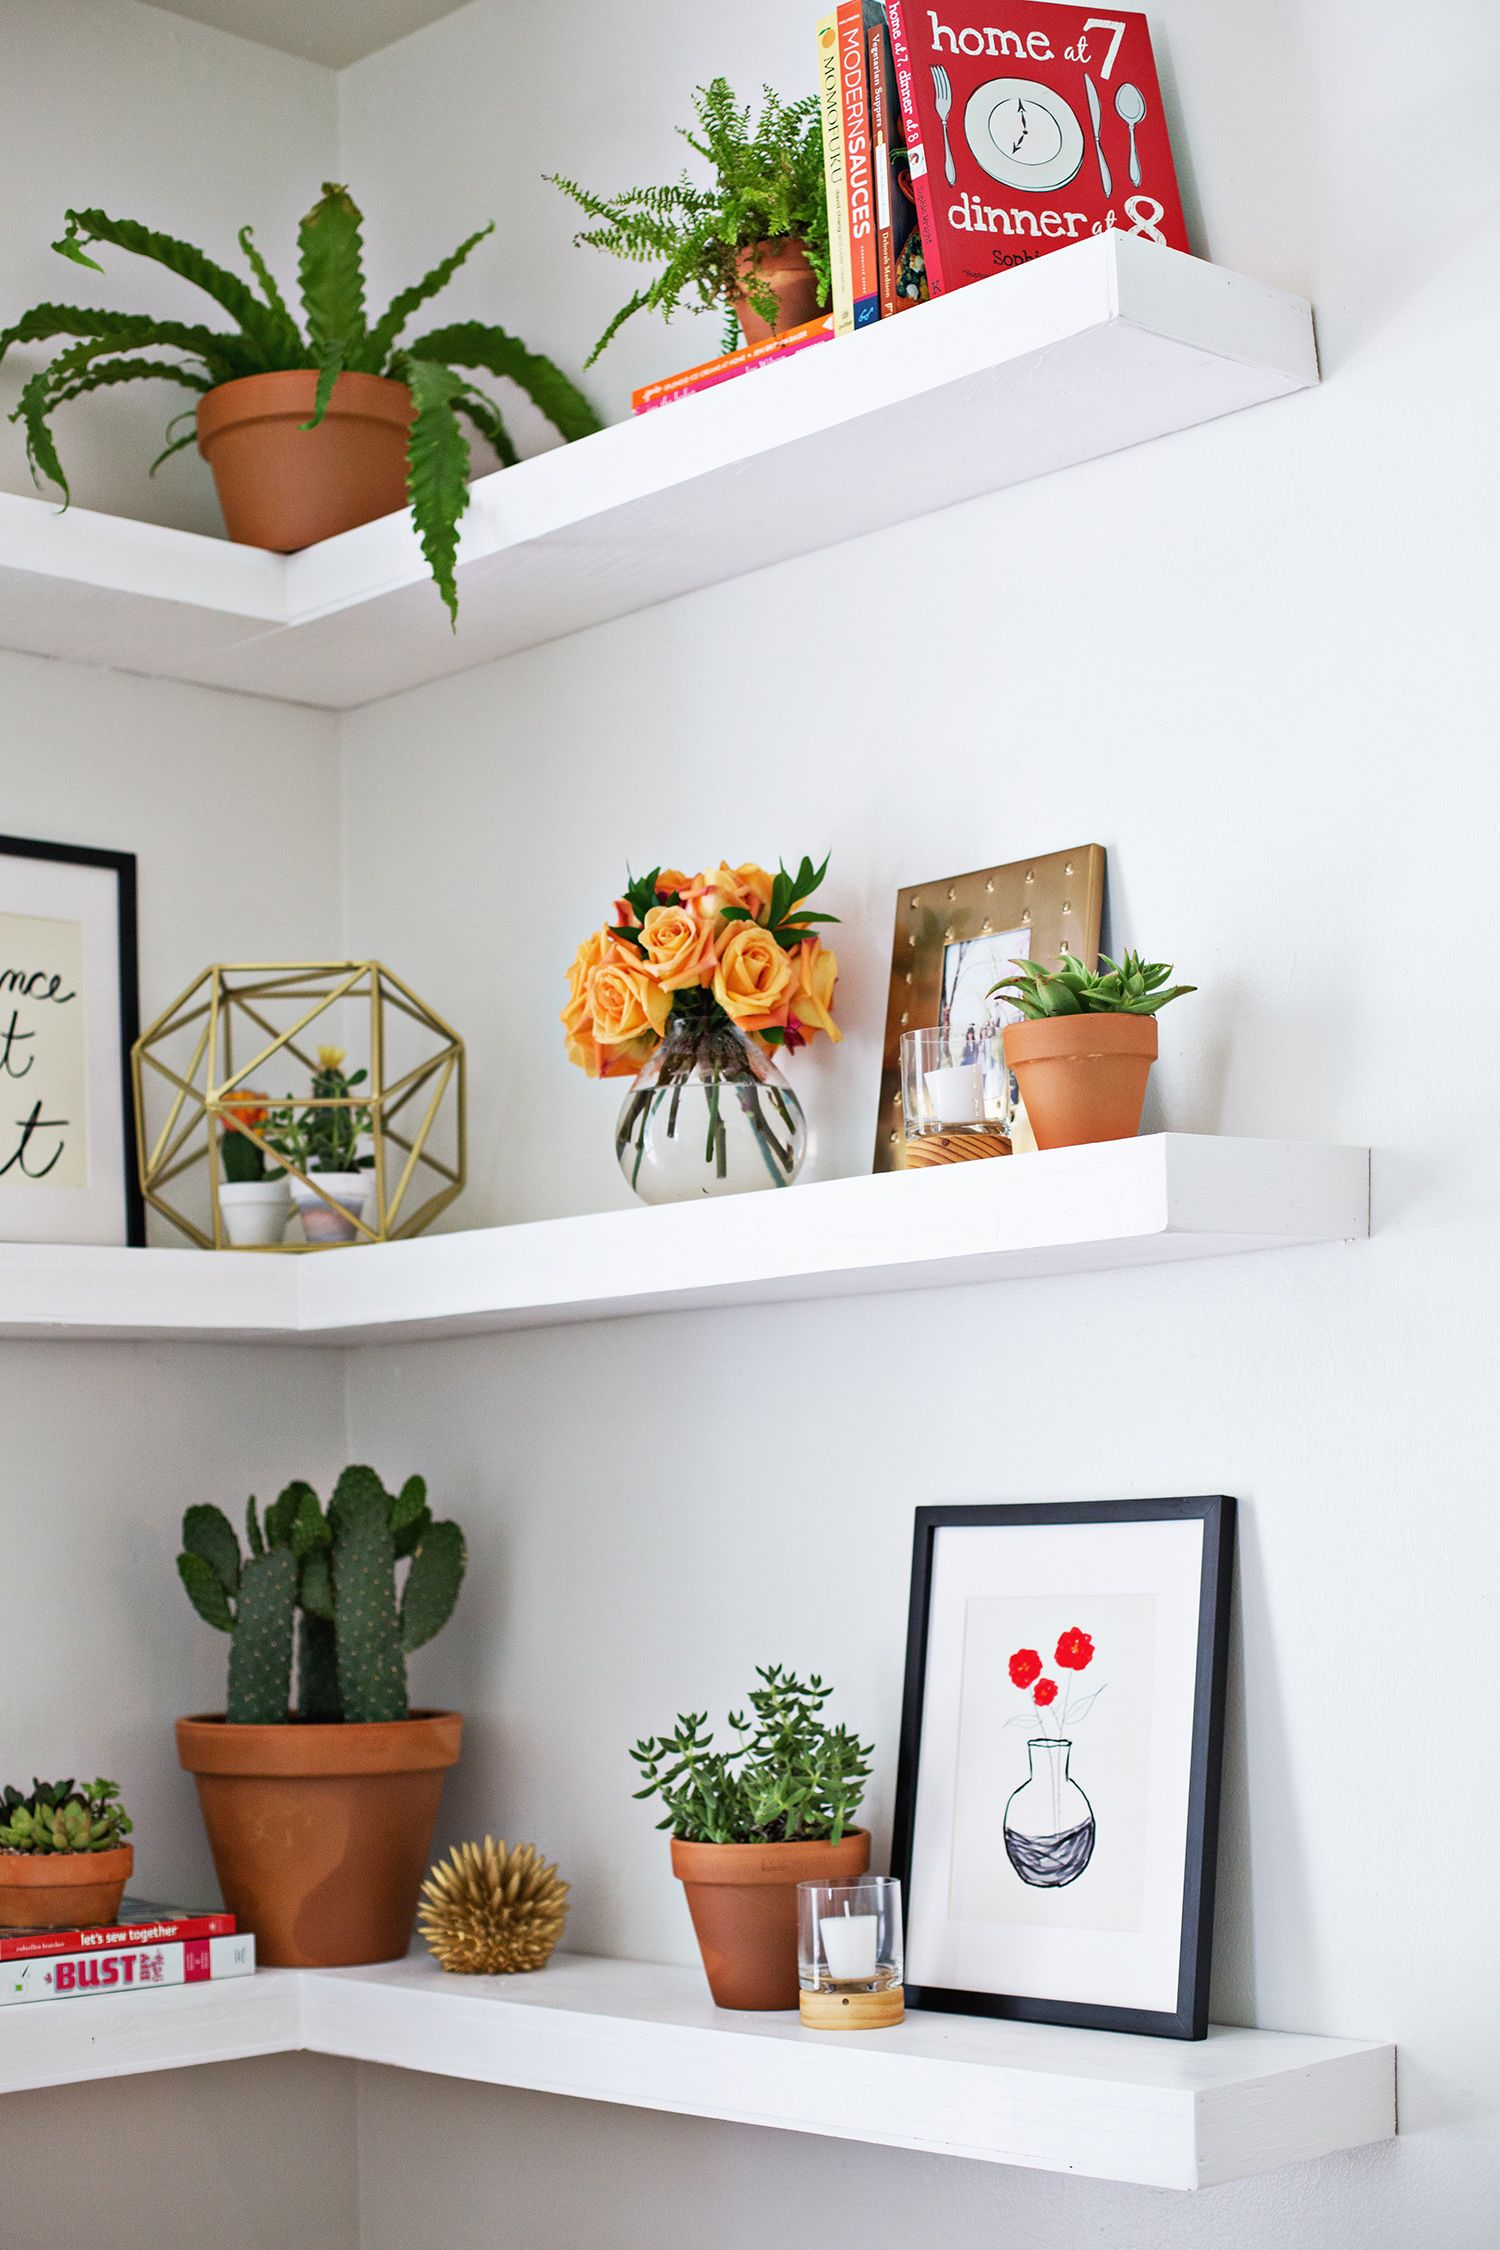 Diy Floating Corner Shelves Floating Shelves Diy Floating Corner Shelves Floating Shelves